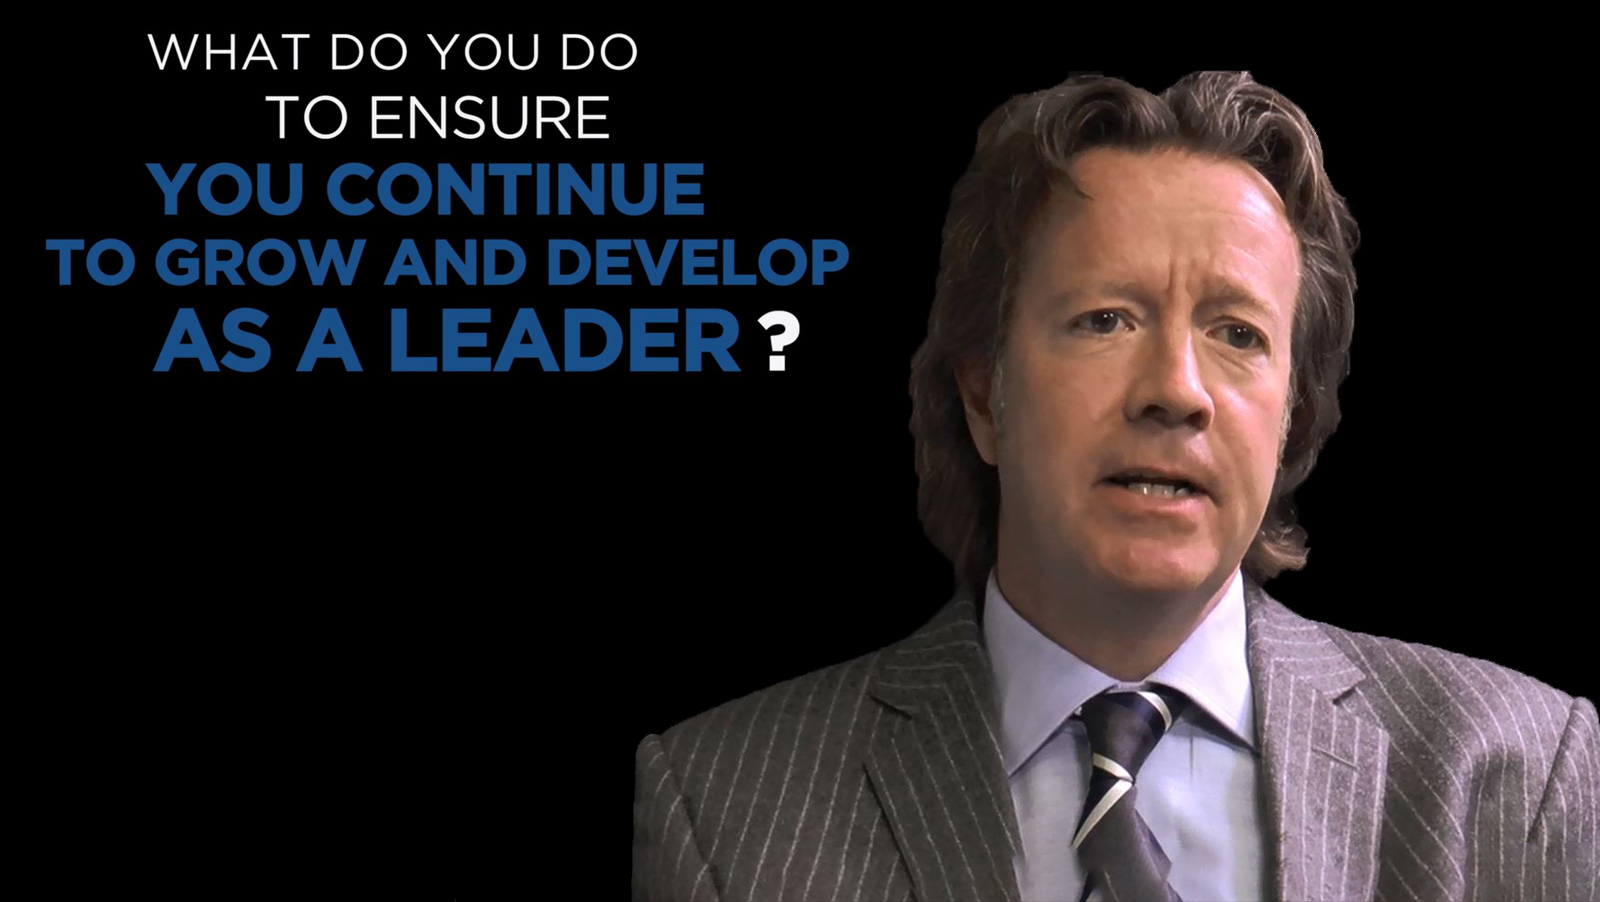 Shared Experience - What do you do to ensure you continue to and develop as a leader?